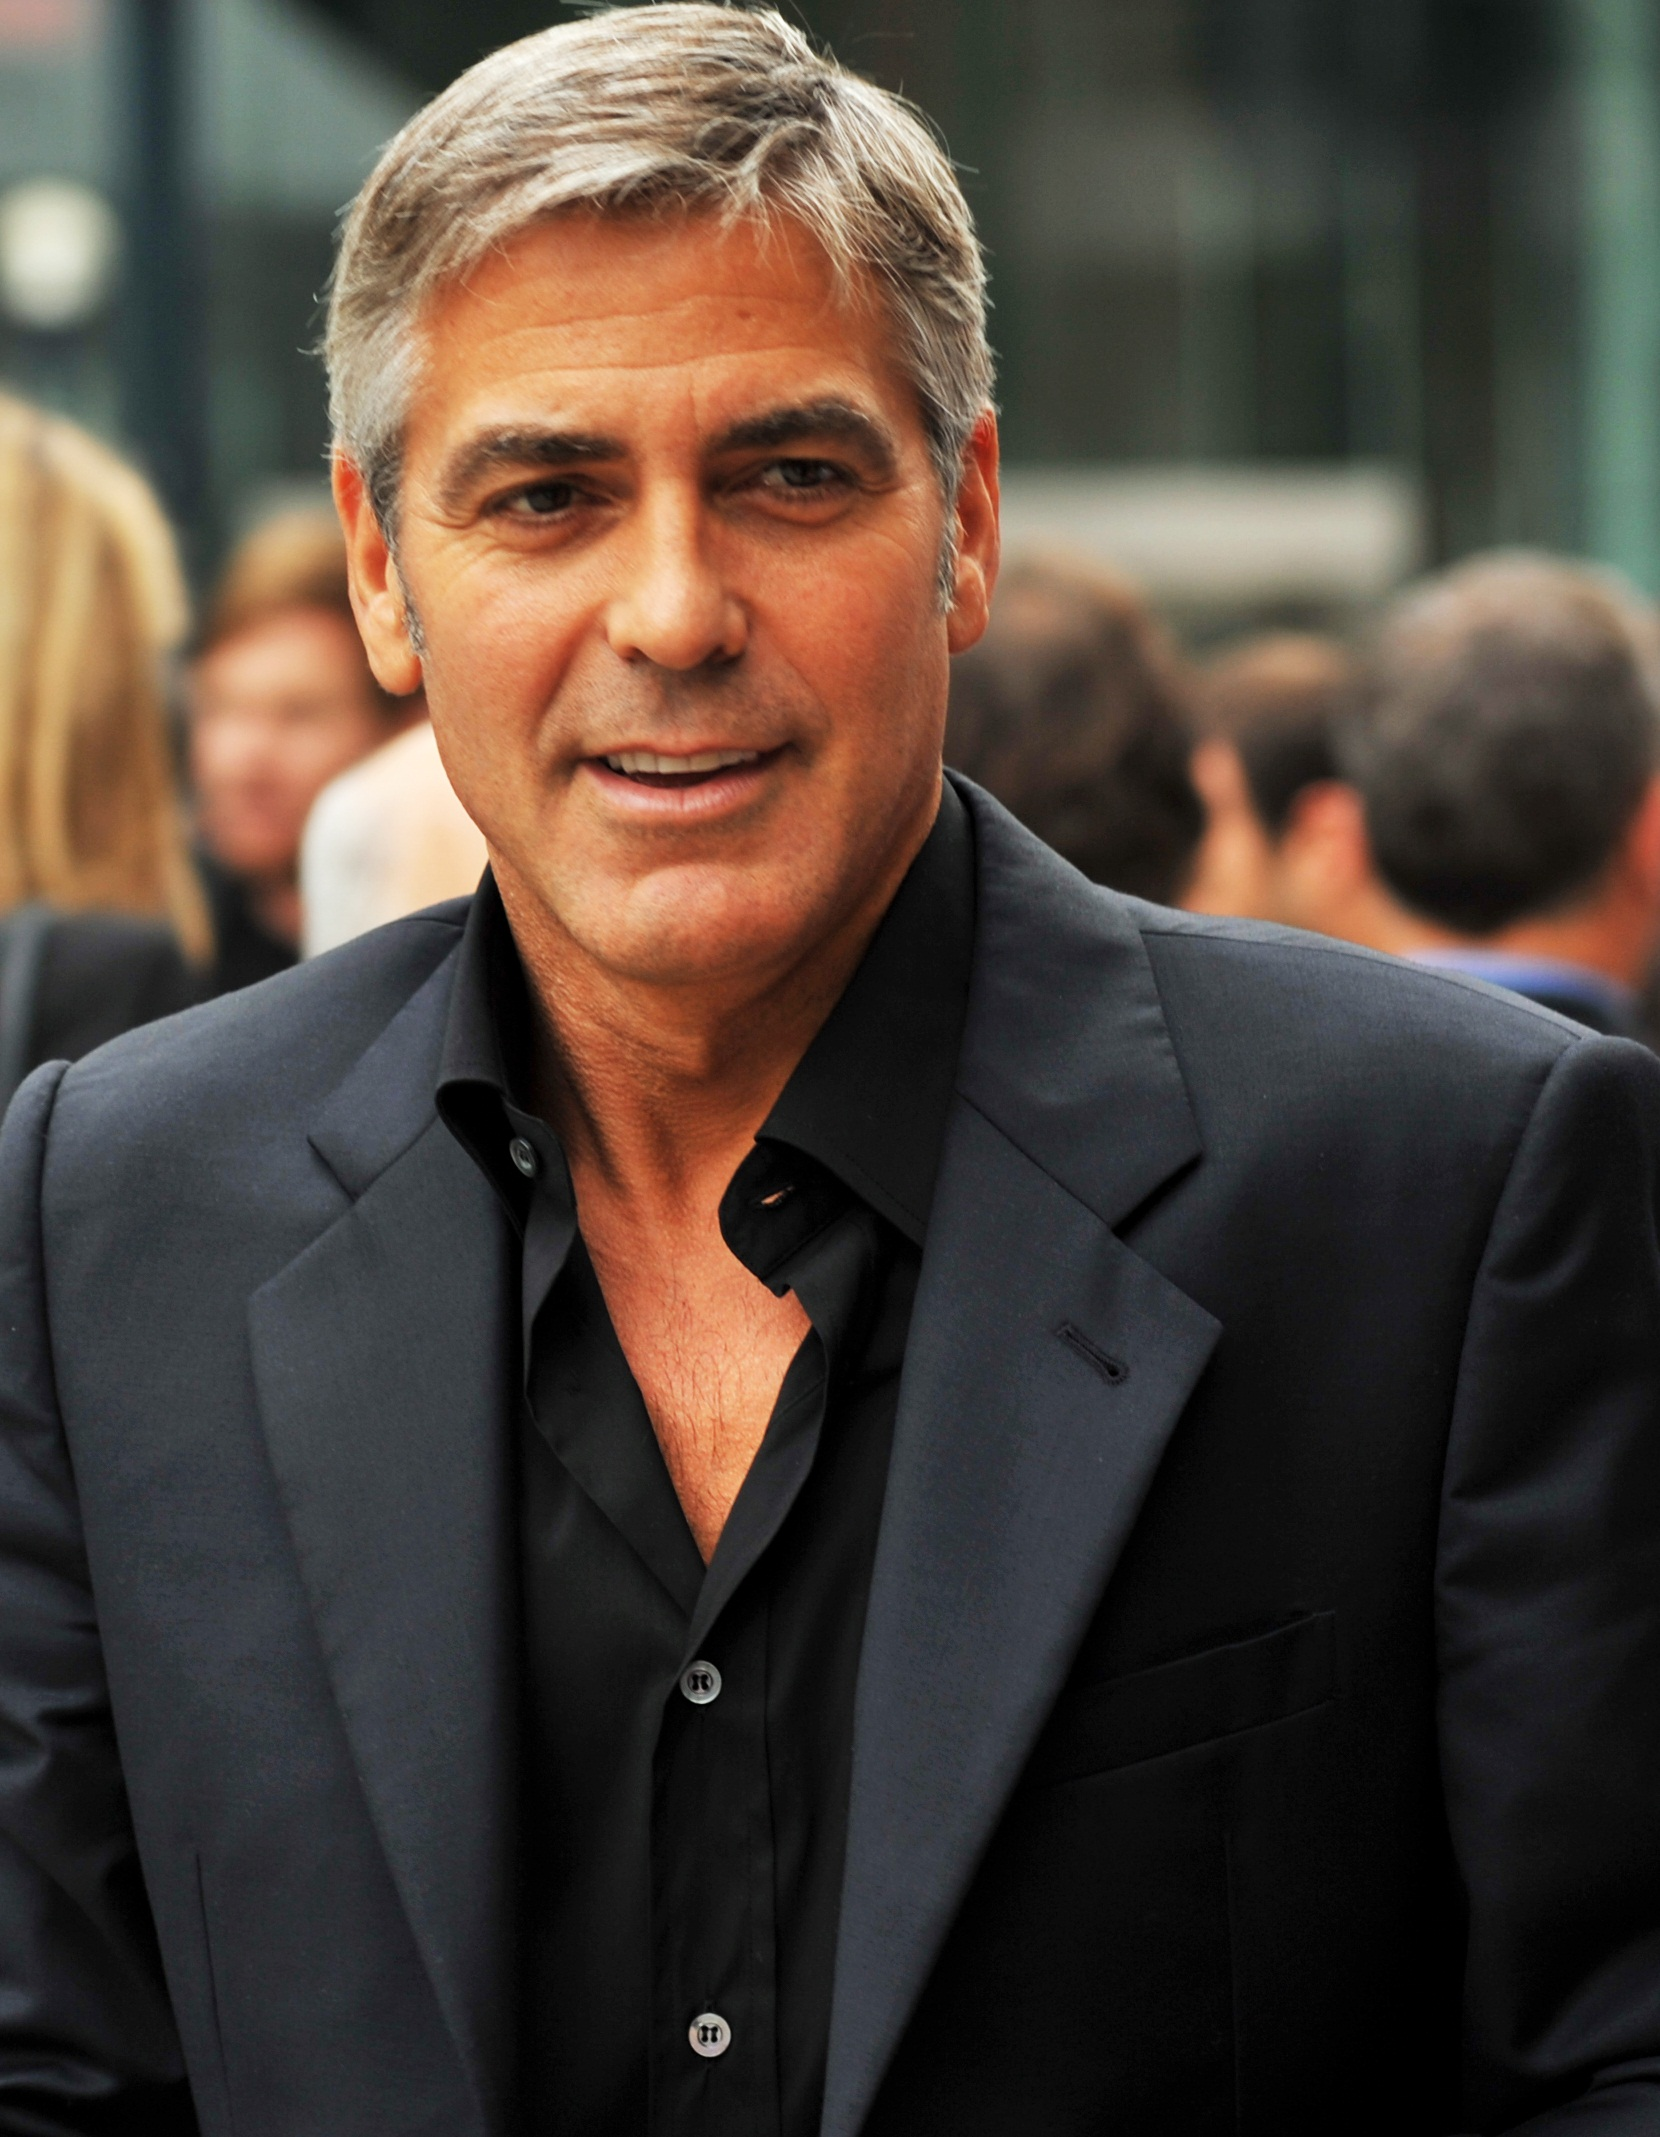 george clooney - photo #24